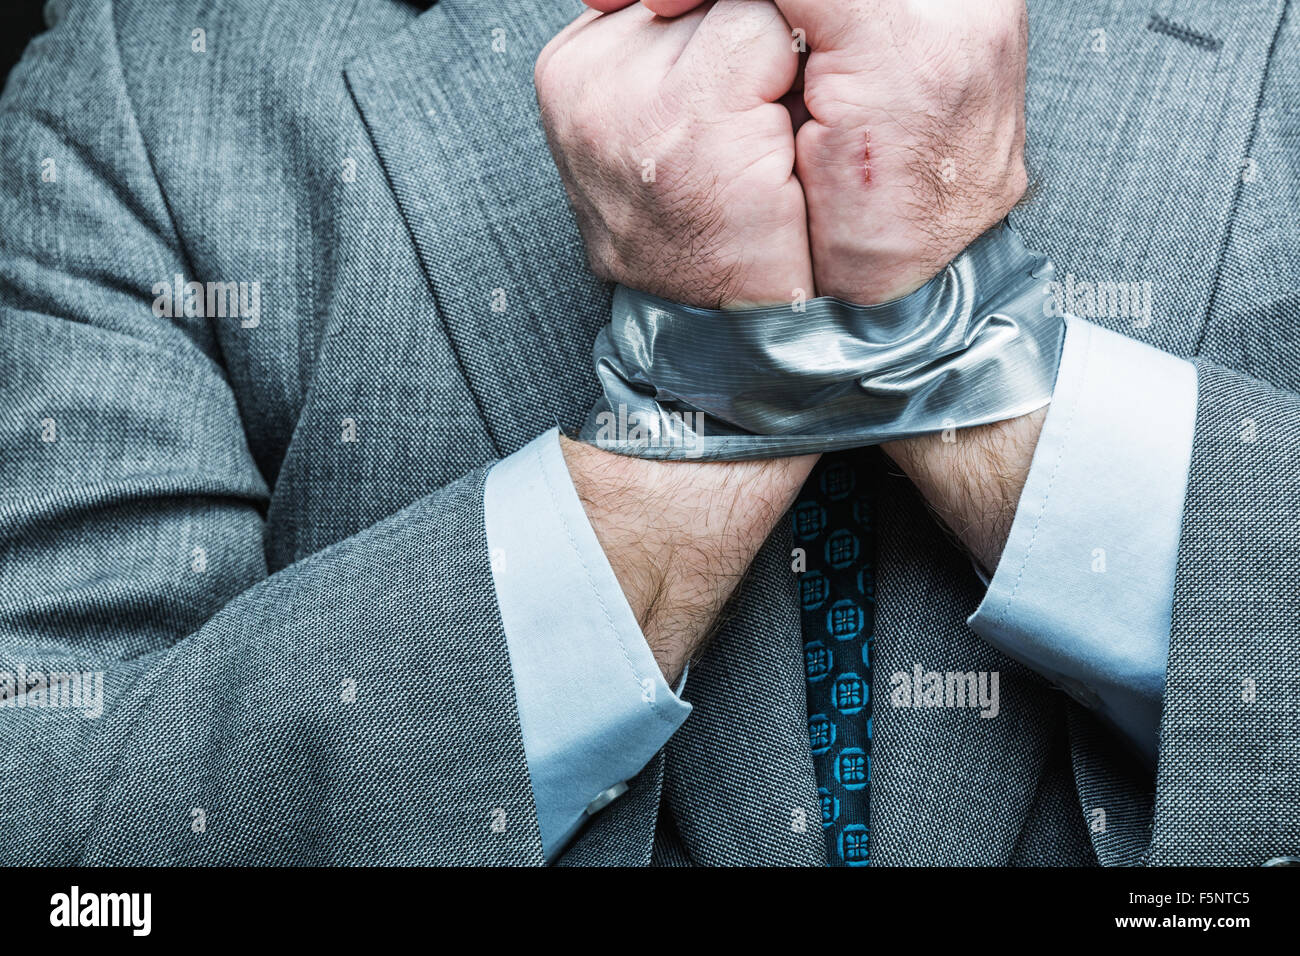 Businessman with hands covered by masking tape, studio shoot - Stock Image